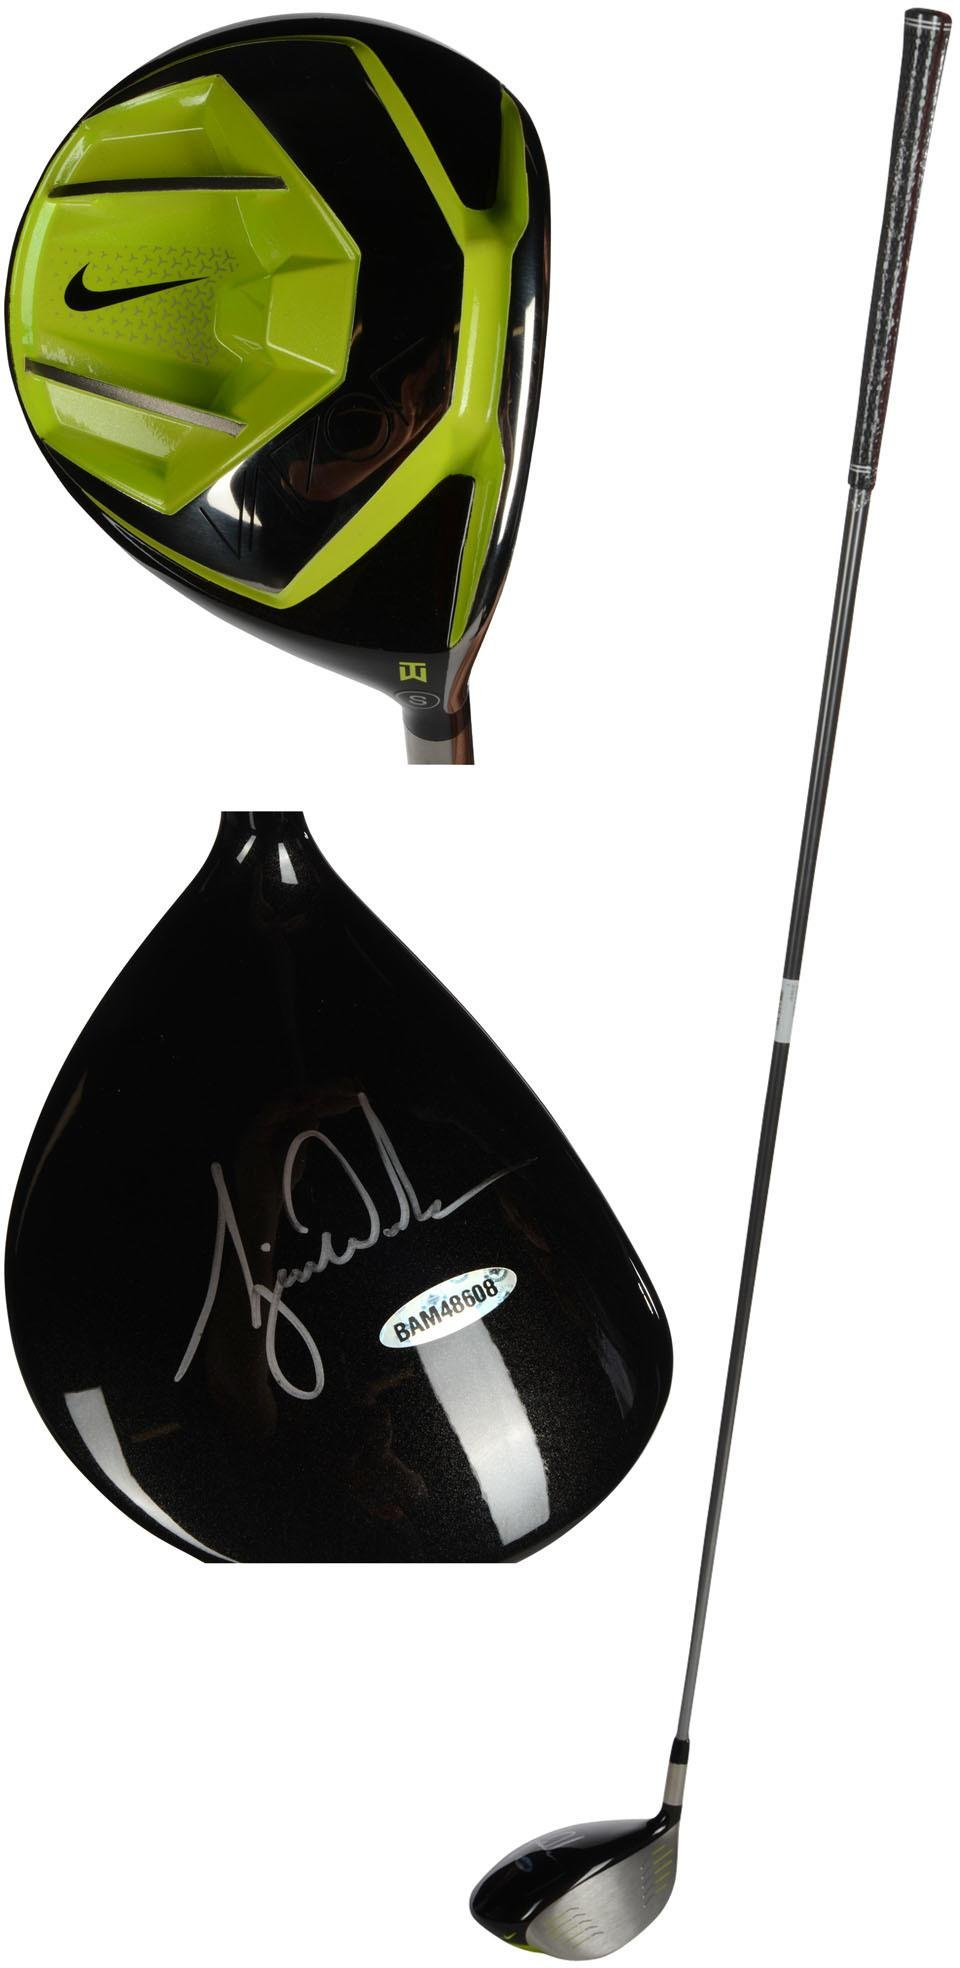 Tiger Woods Autographed Nike Vapor Speed TW Driver Upper Deck Fanatics Authentic Certified Autographed Golf Clubs